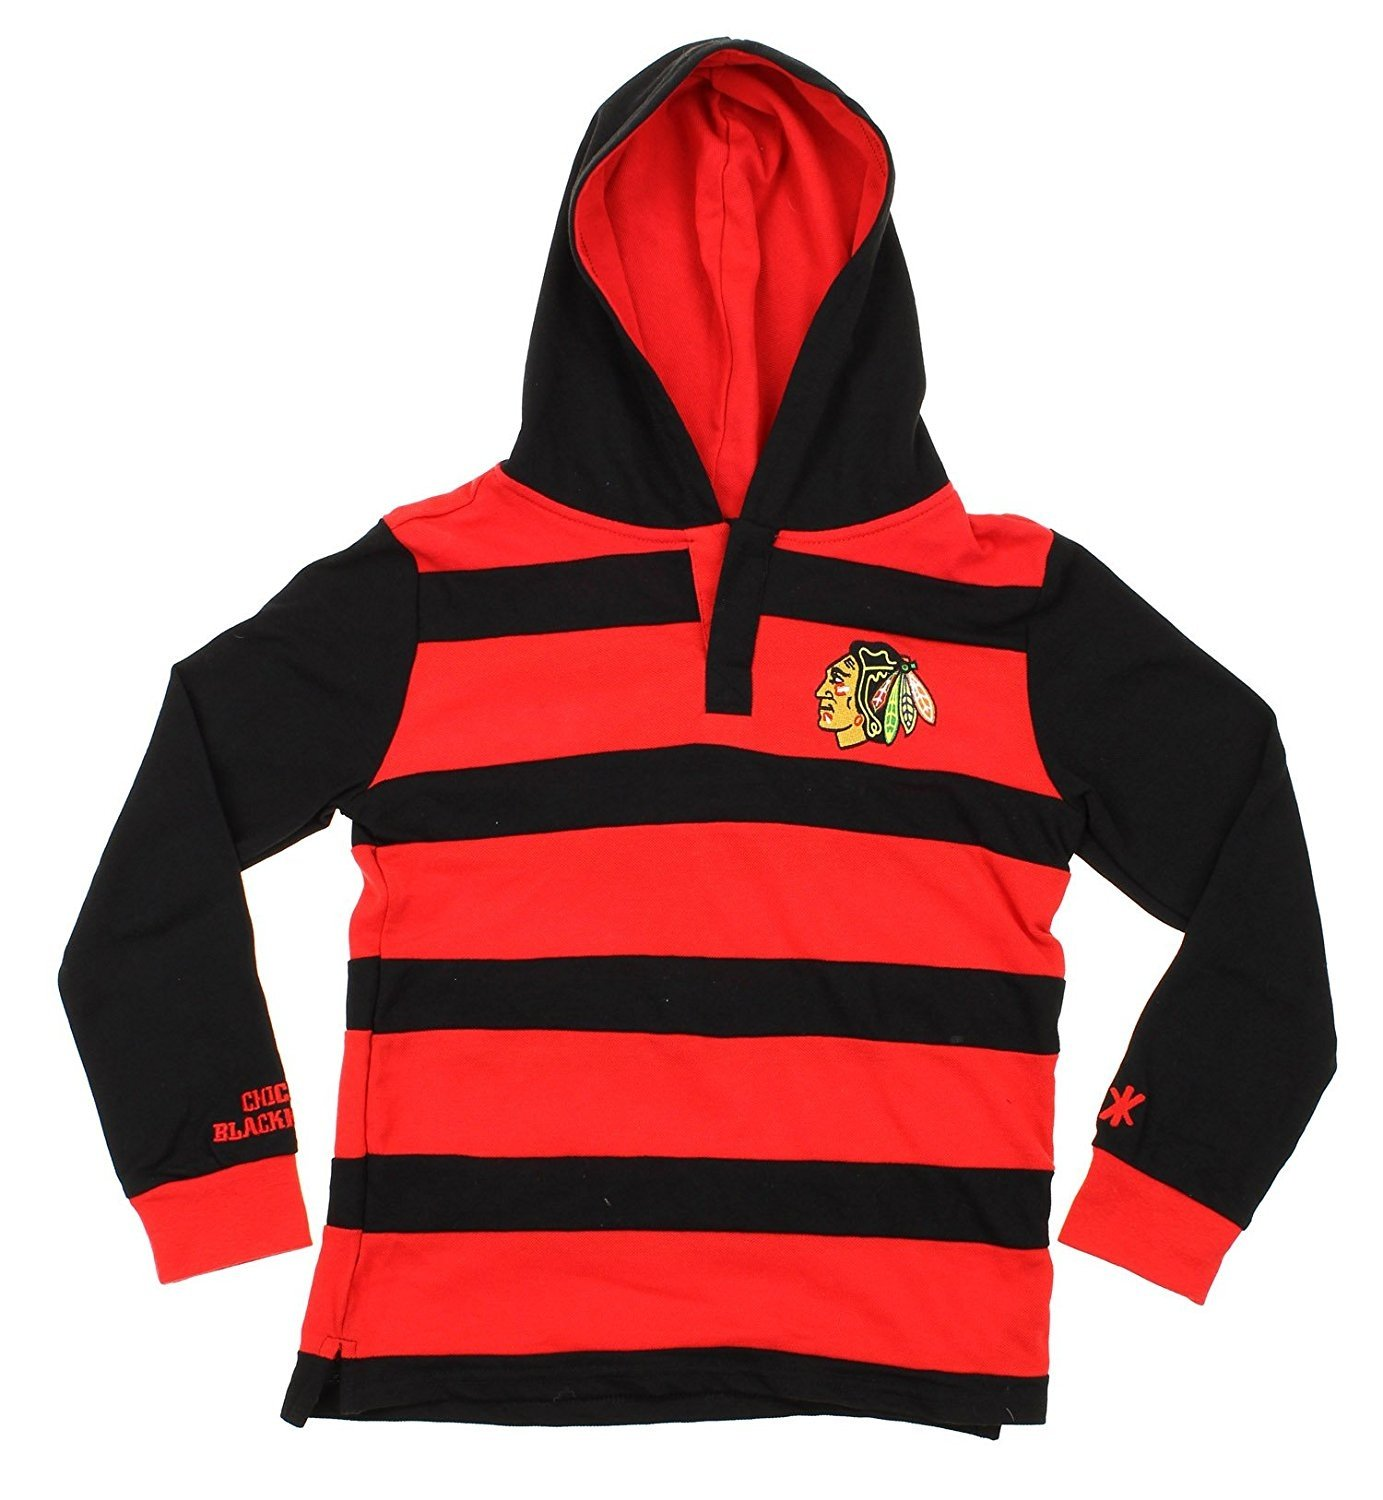 bfce911558 Amazon.com : Klew NHL Boys (8-20) Youth Striped Rugby Pullover Hoody  Sweater Shirt, Various Teams : Sports & Outdoors